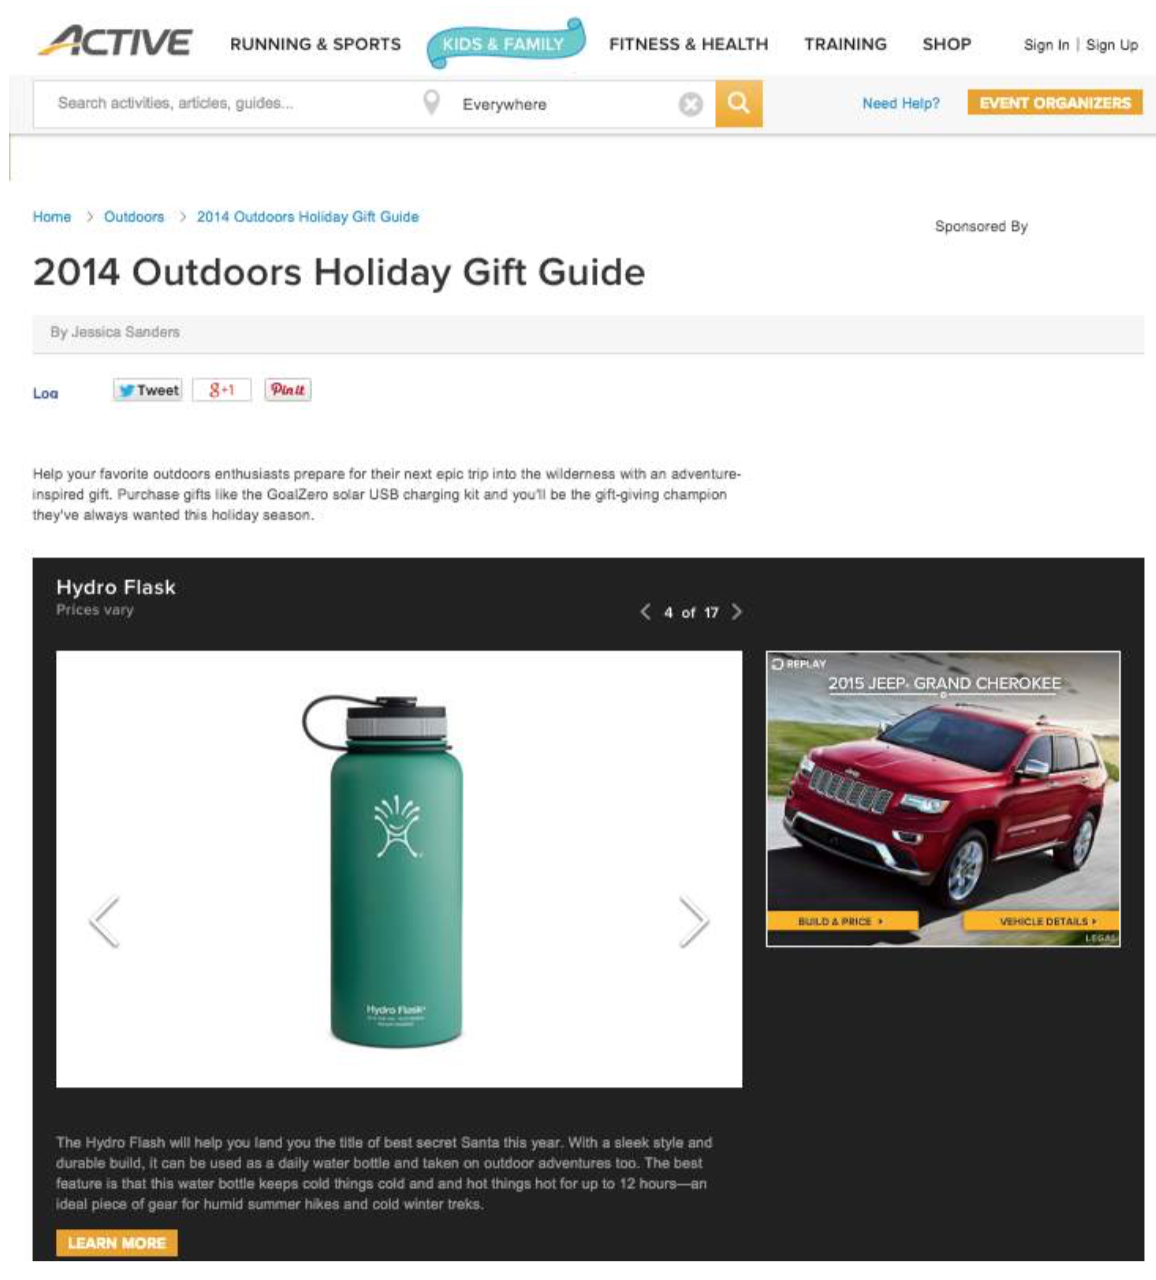 2014 Outdoors Holiday Gift Guide